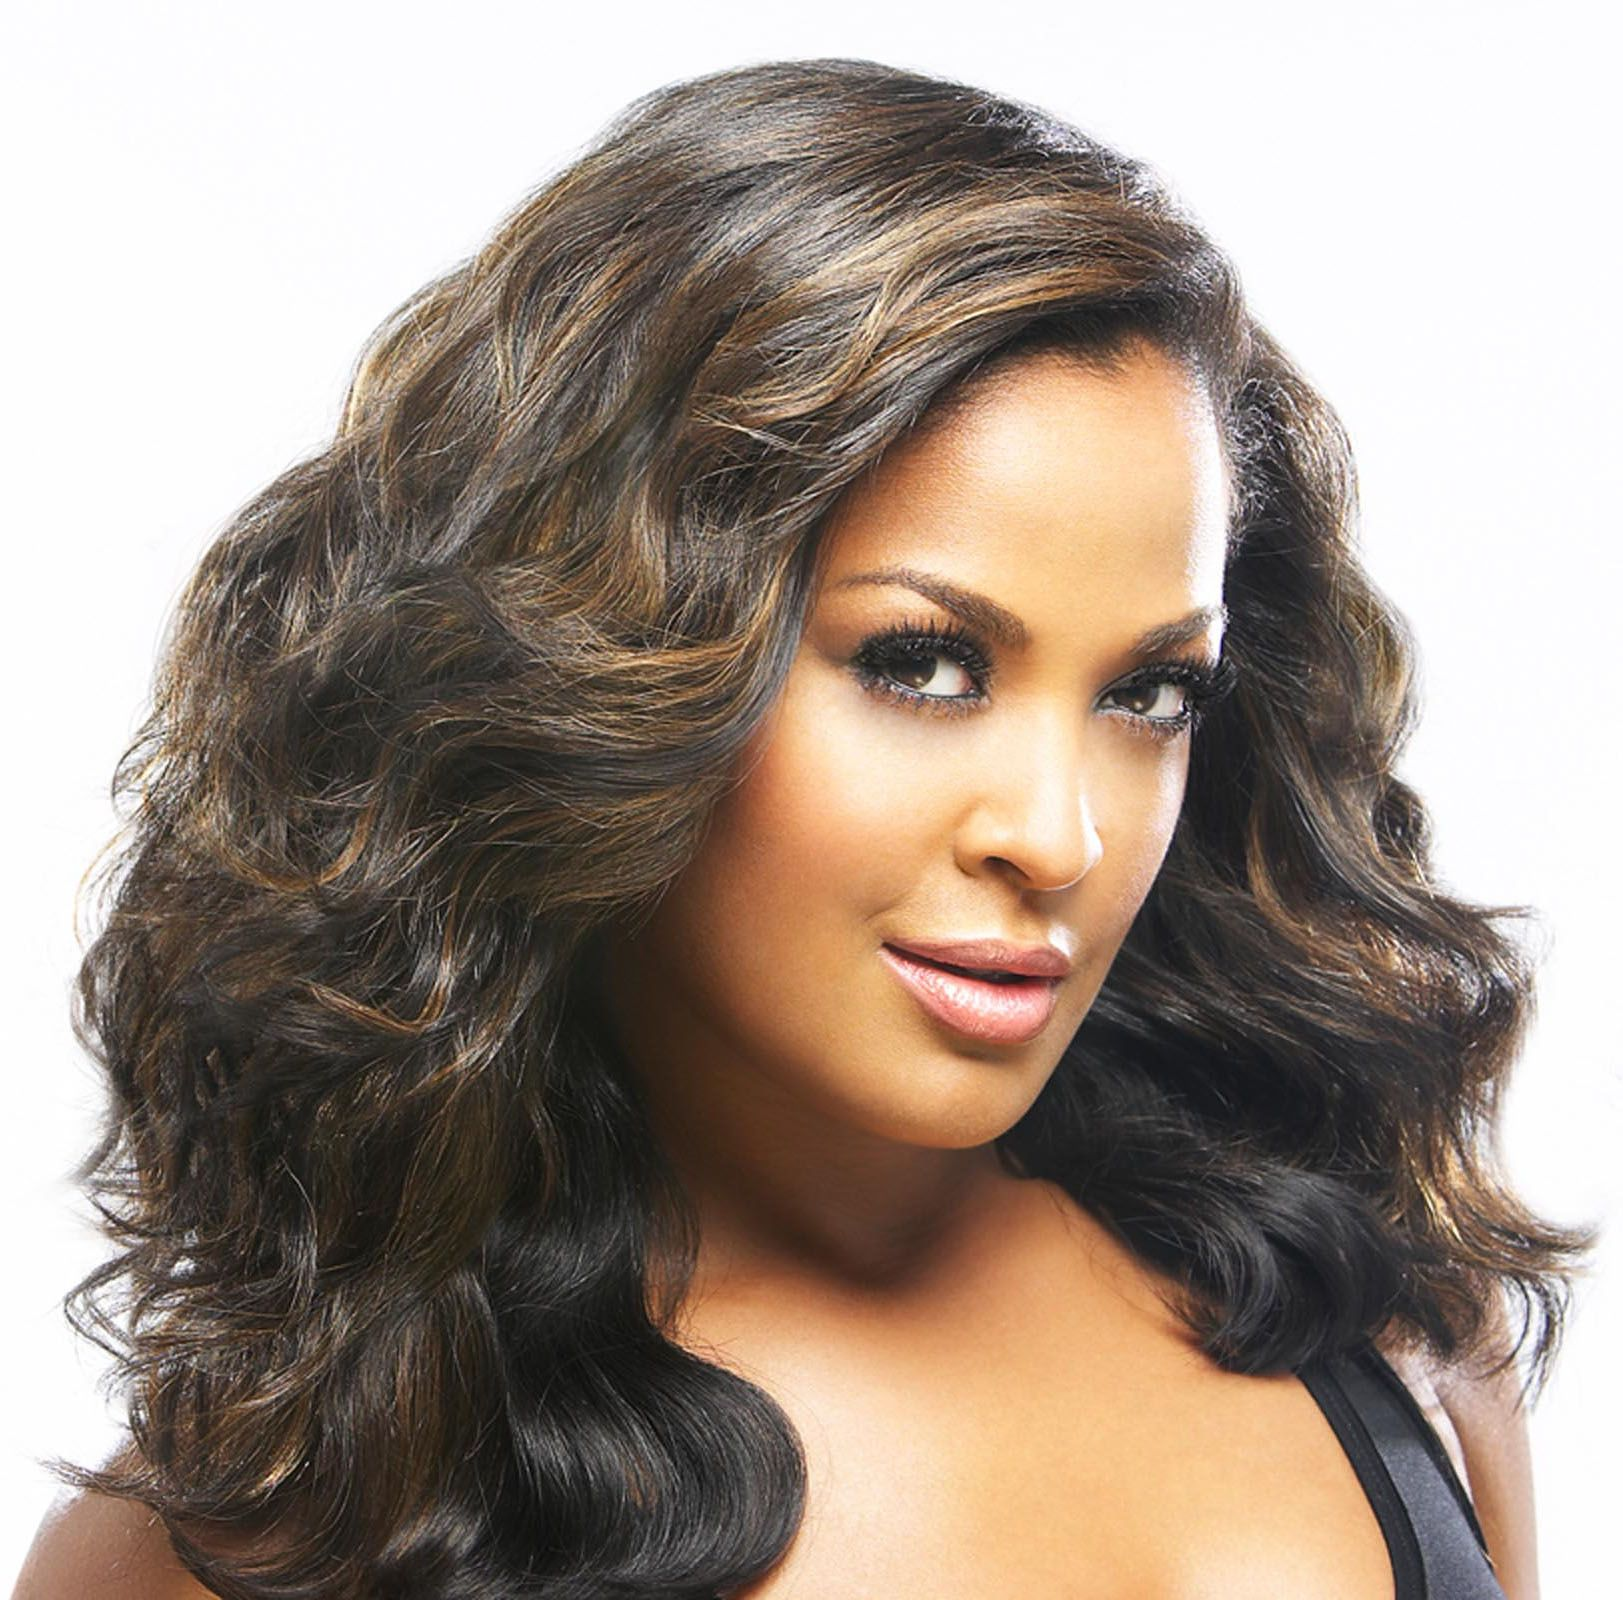 Laila Ali Launches EcoFriendly Beauty Products Line